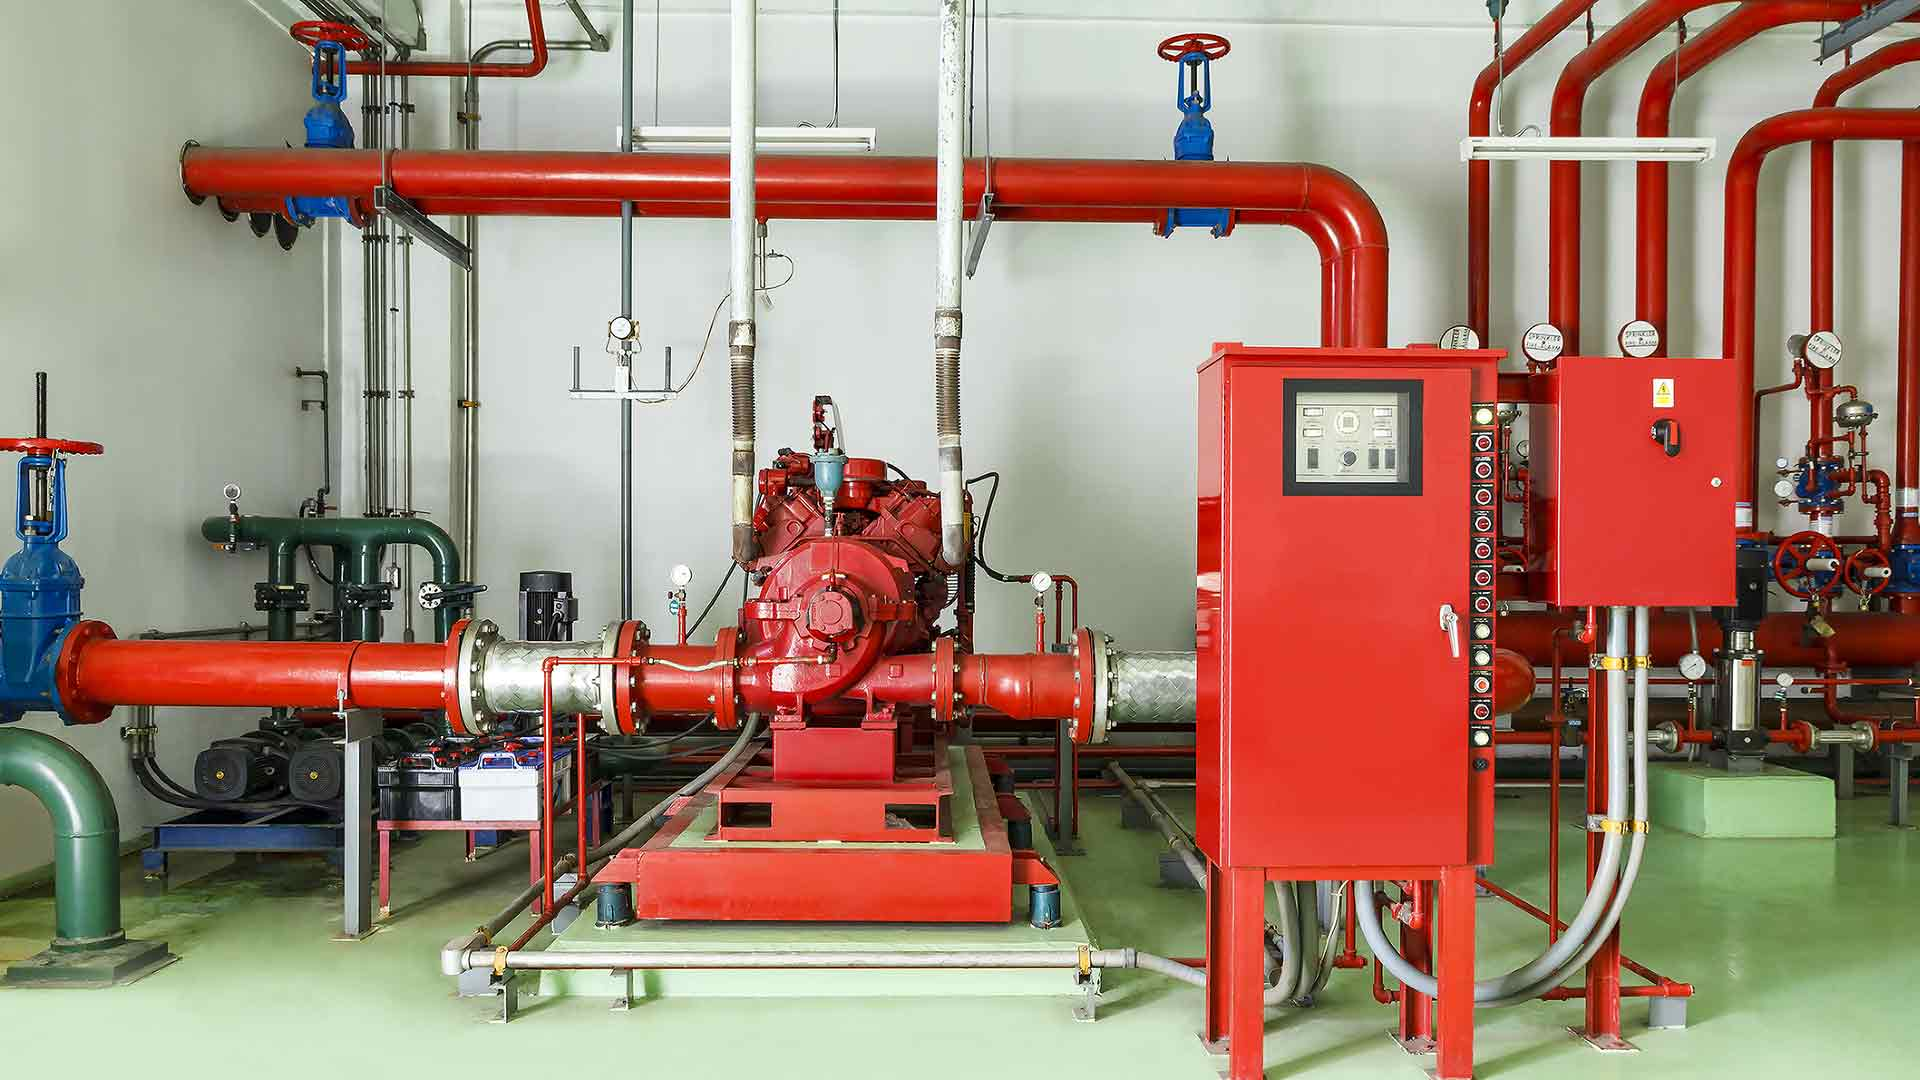 Global Fire Pump Market growth analyzed in a new study